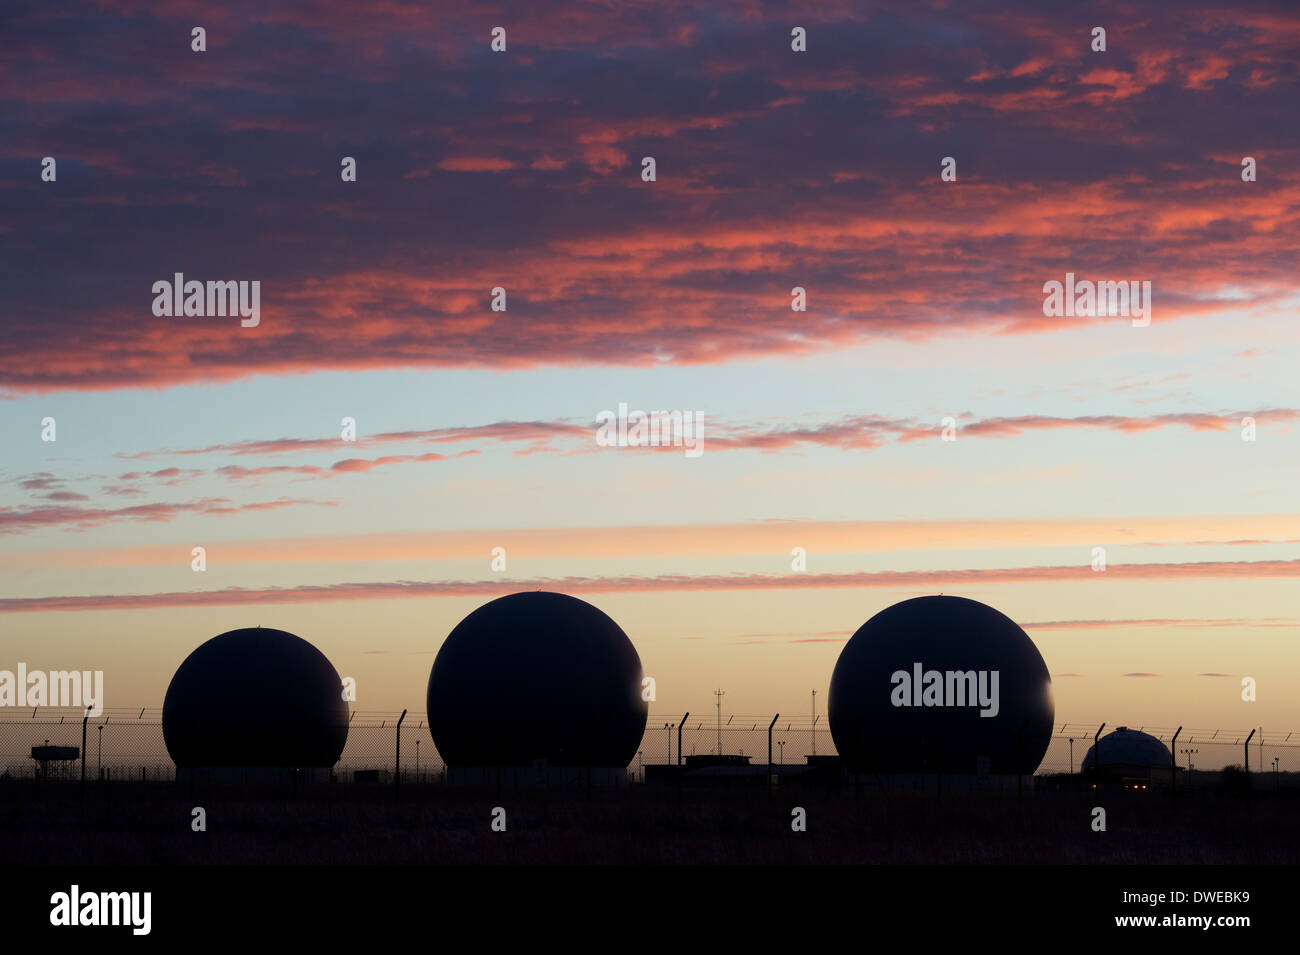 Domes covering radar scanners at RAF Croughton. Northamptonshire, England at dawn. Silhouette - Stock Image